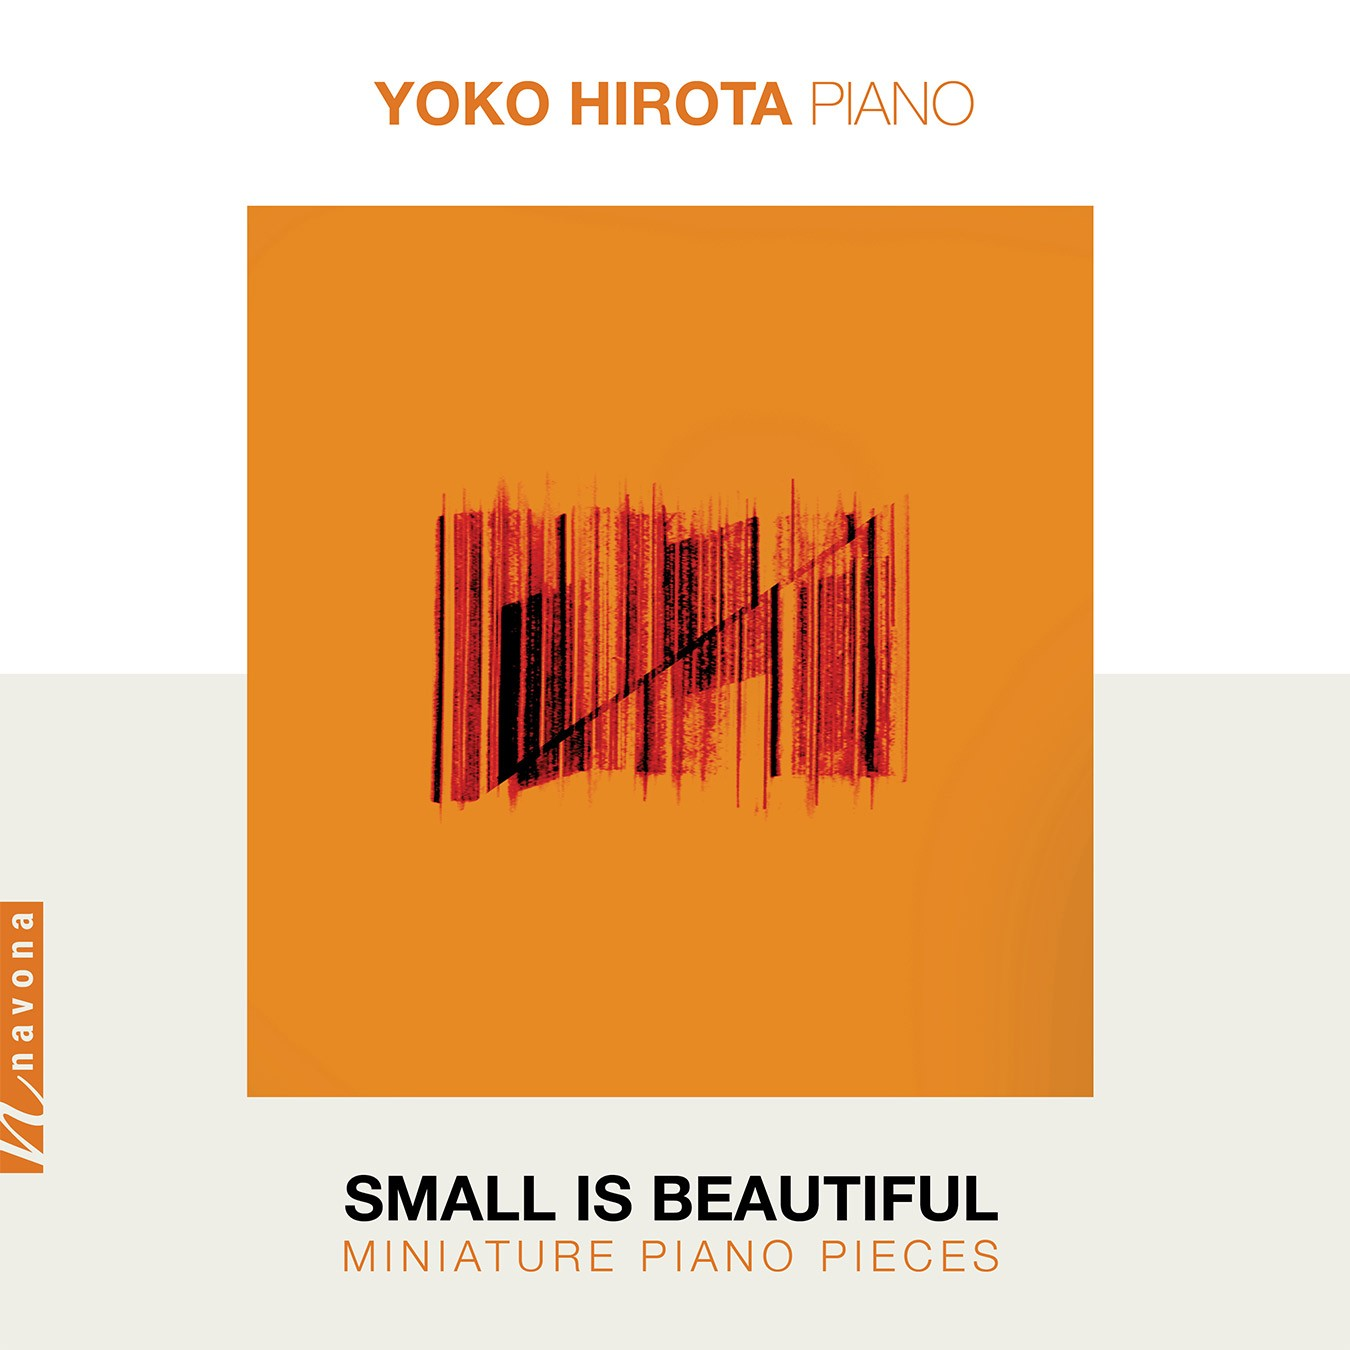 SMALL IS BEAUTIFUL: MINIATURE PIANO PIECES - Yoko Hirota - Album Cover